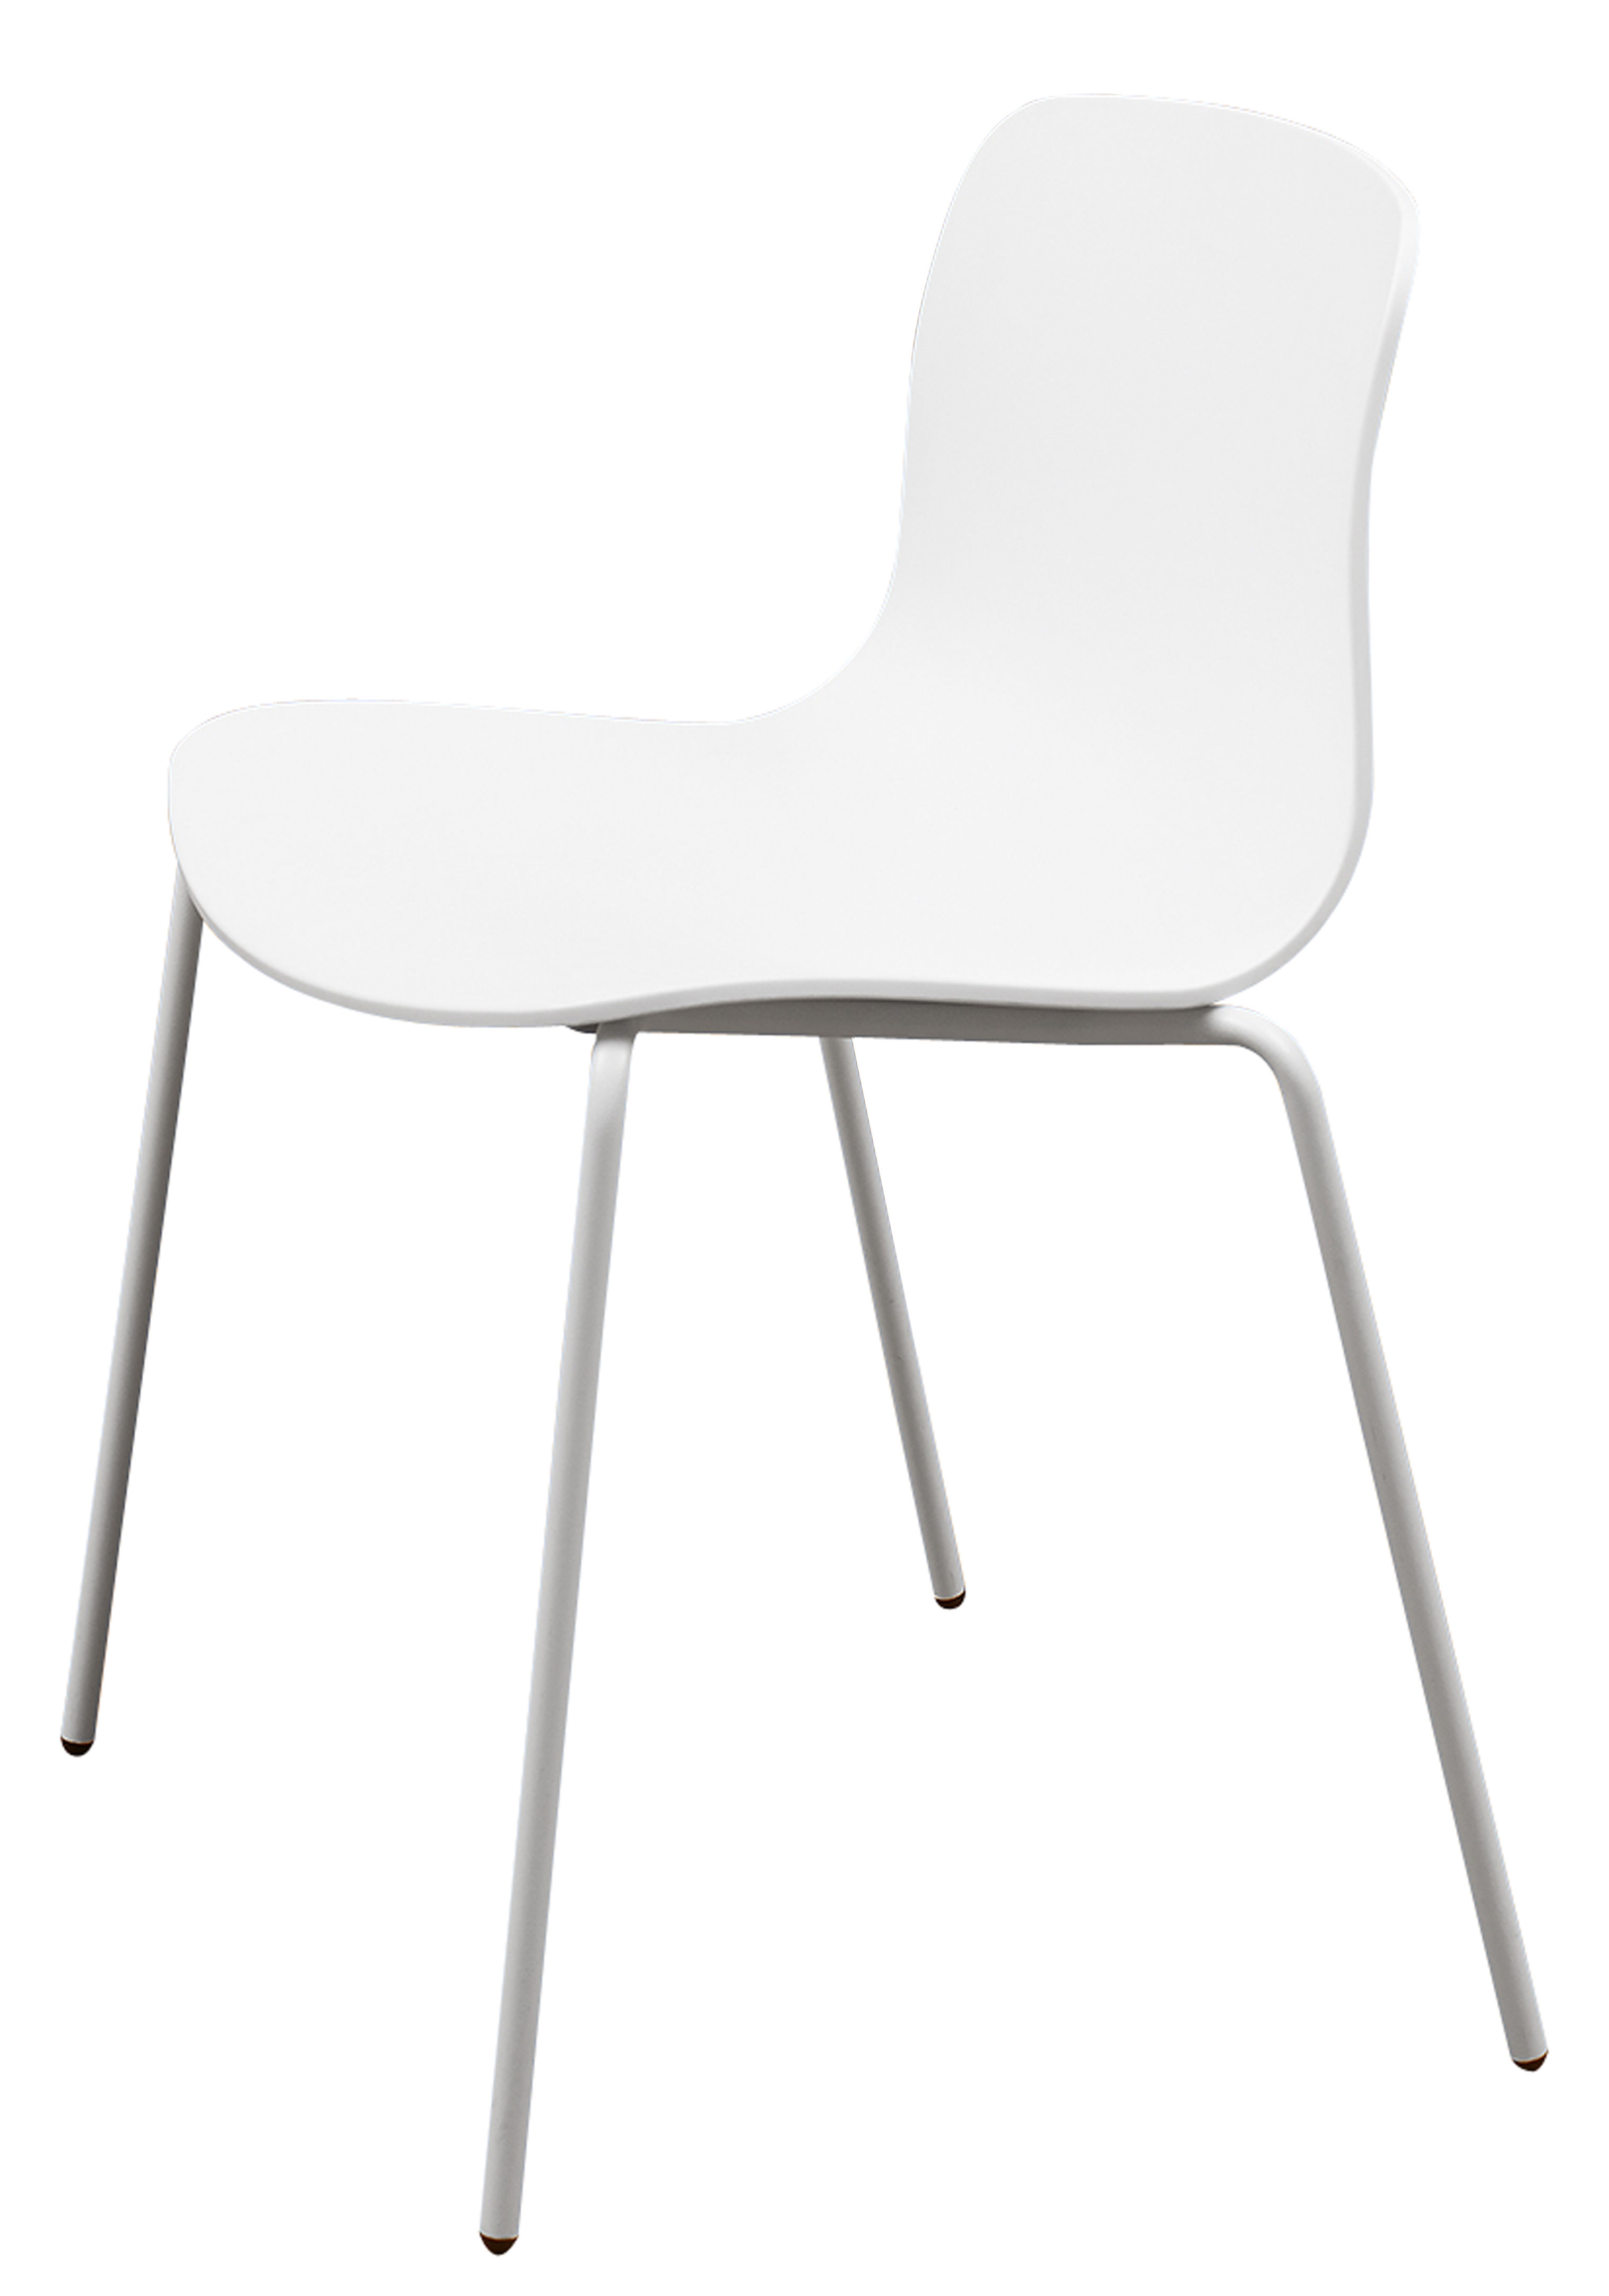 about a chair aac16 stackable chair plastic shell